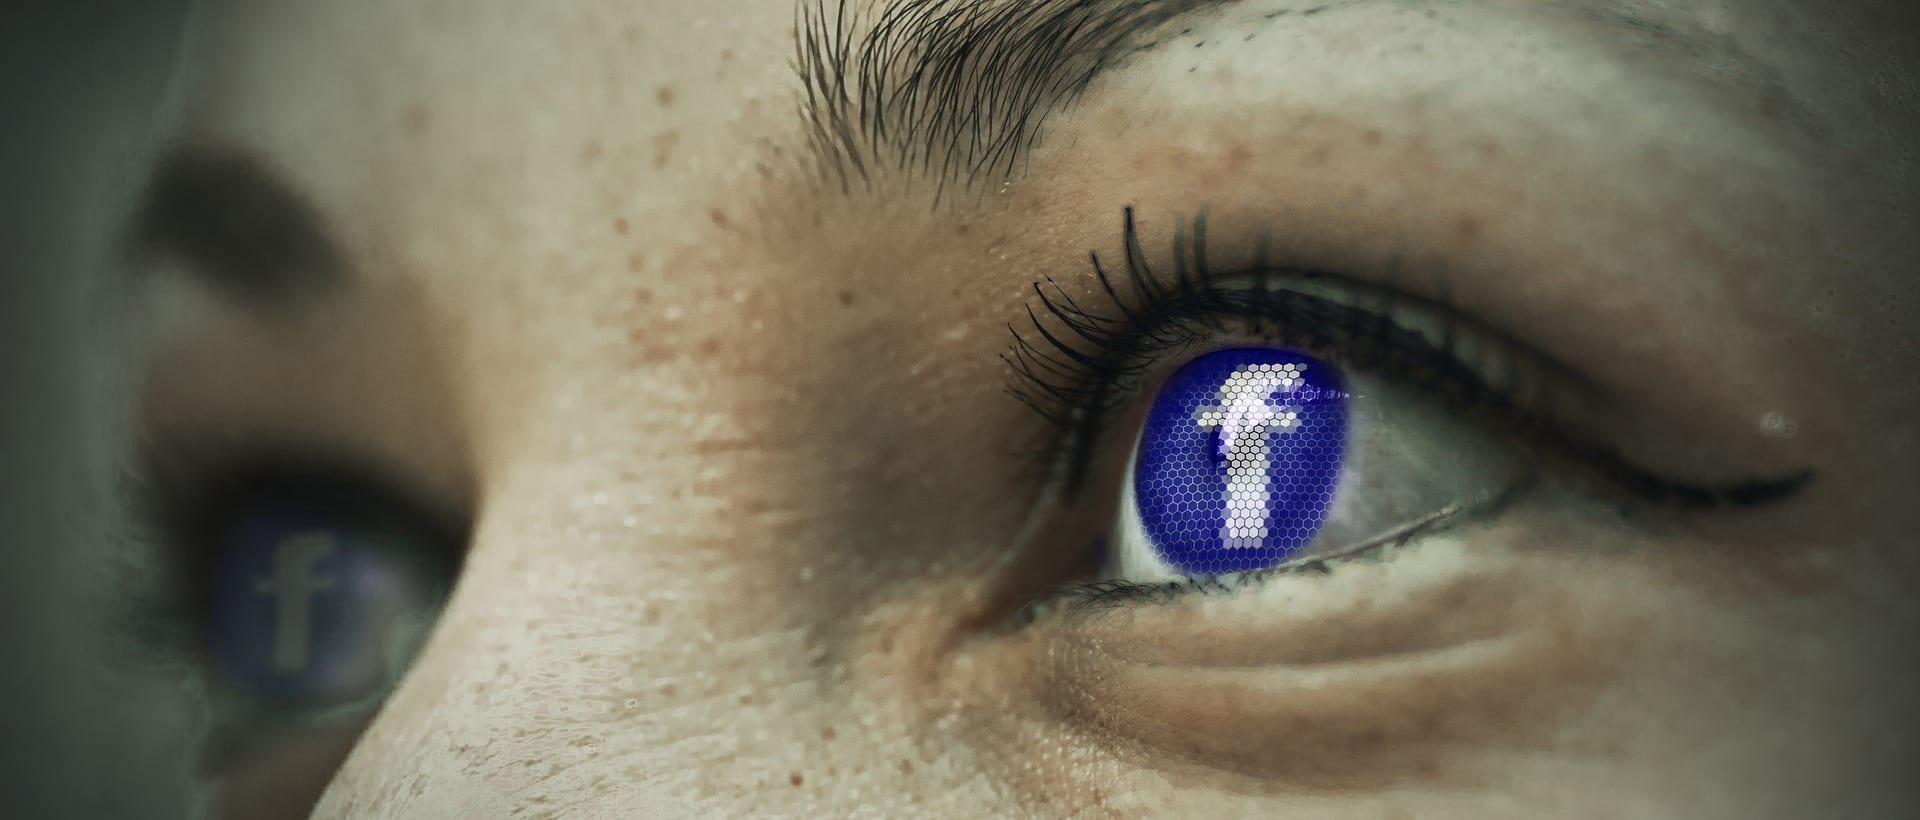 facebook spying on you